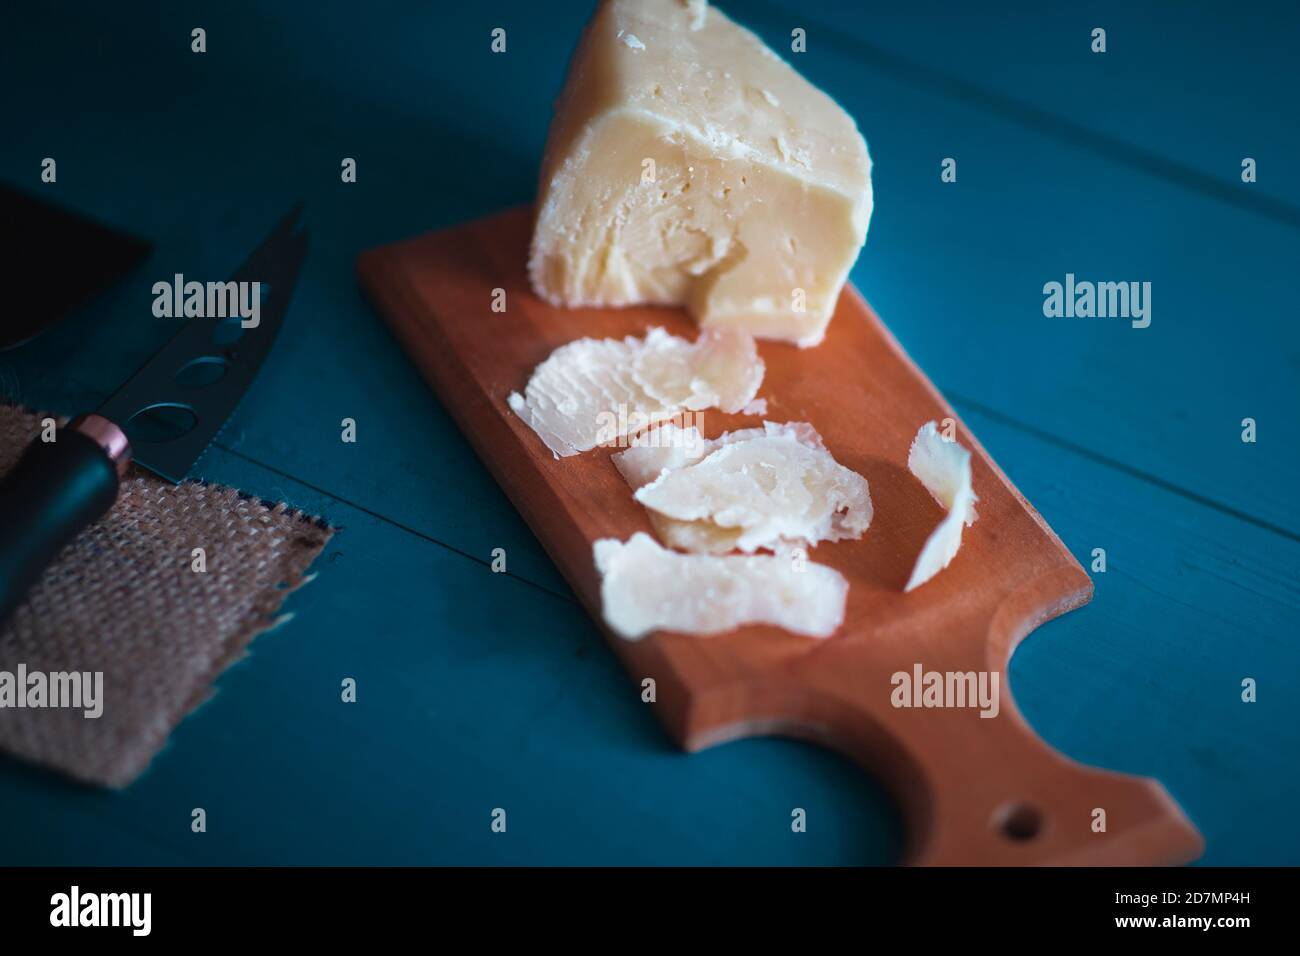 Composed cloesup detail view of aged cheddar cheese with cheese knife set, over vintage blue wooden backdrop Stock Photo